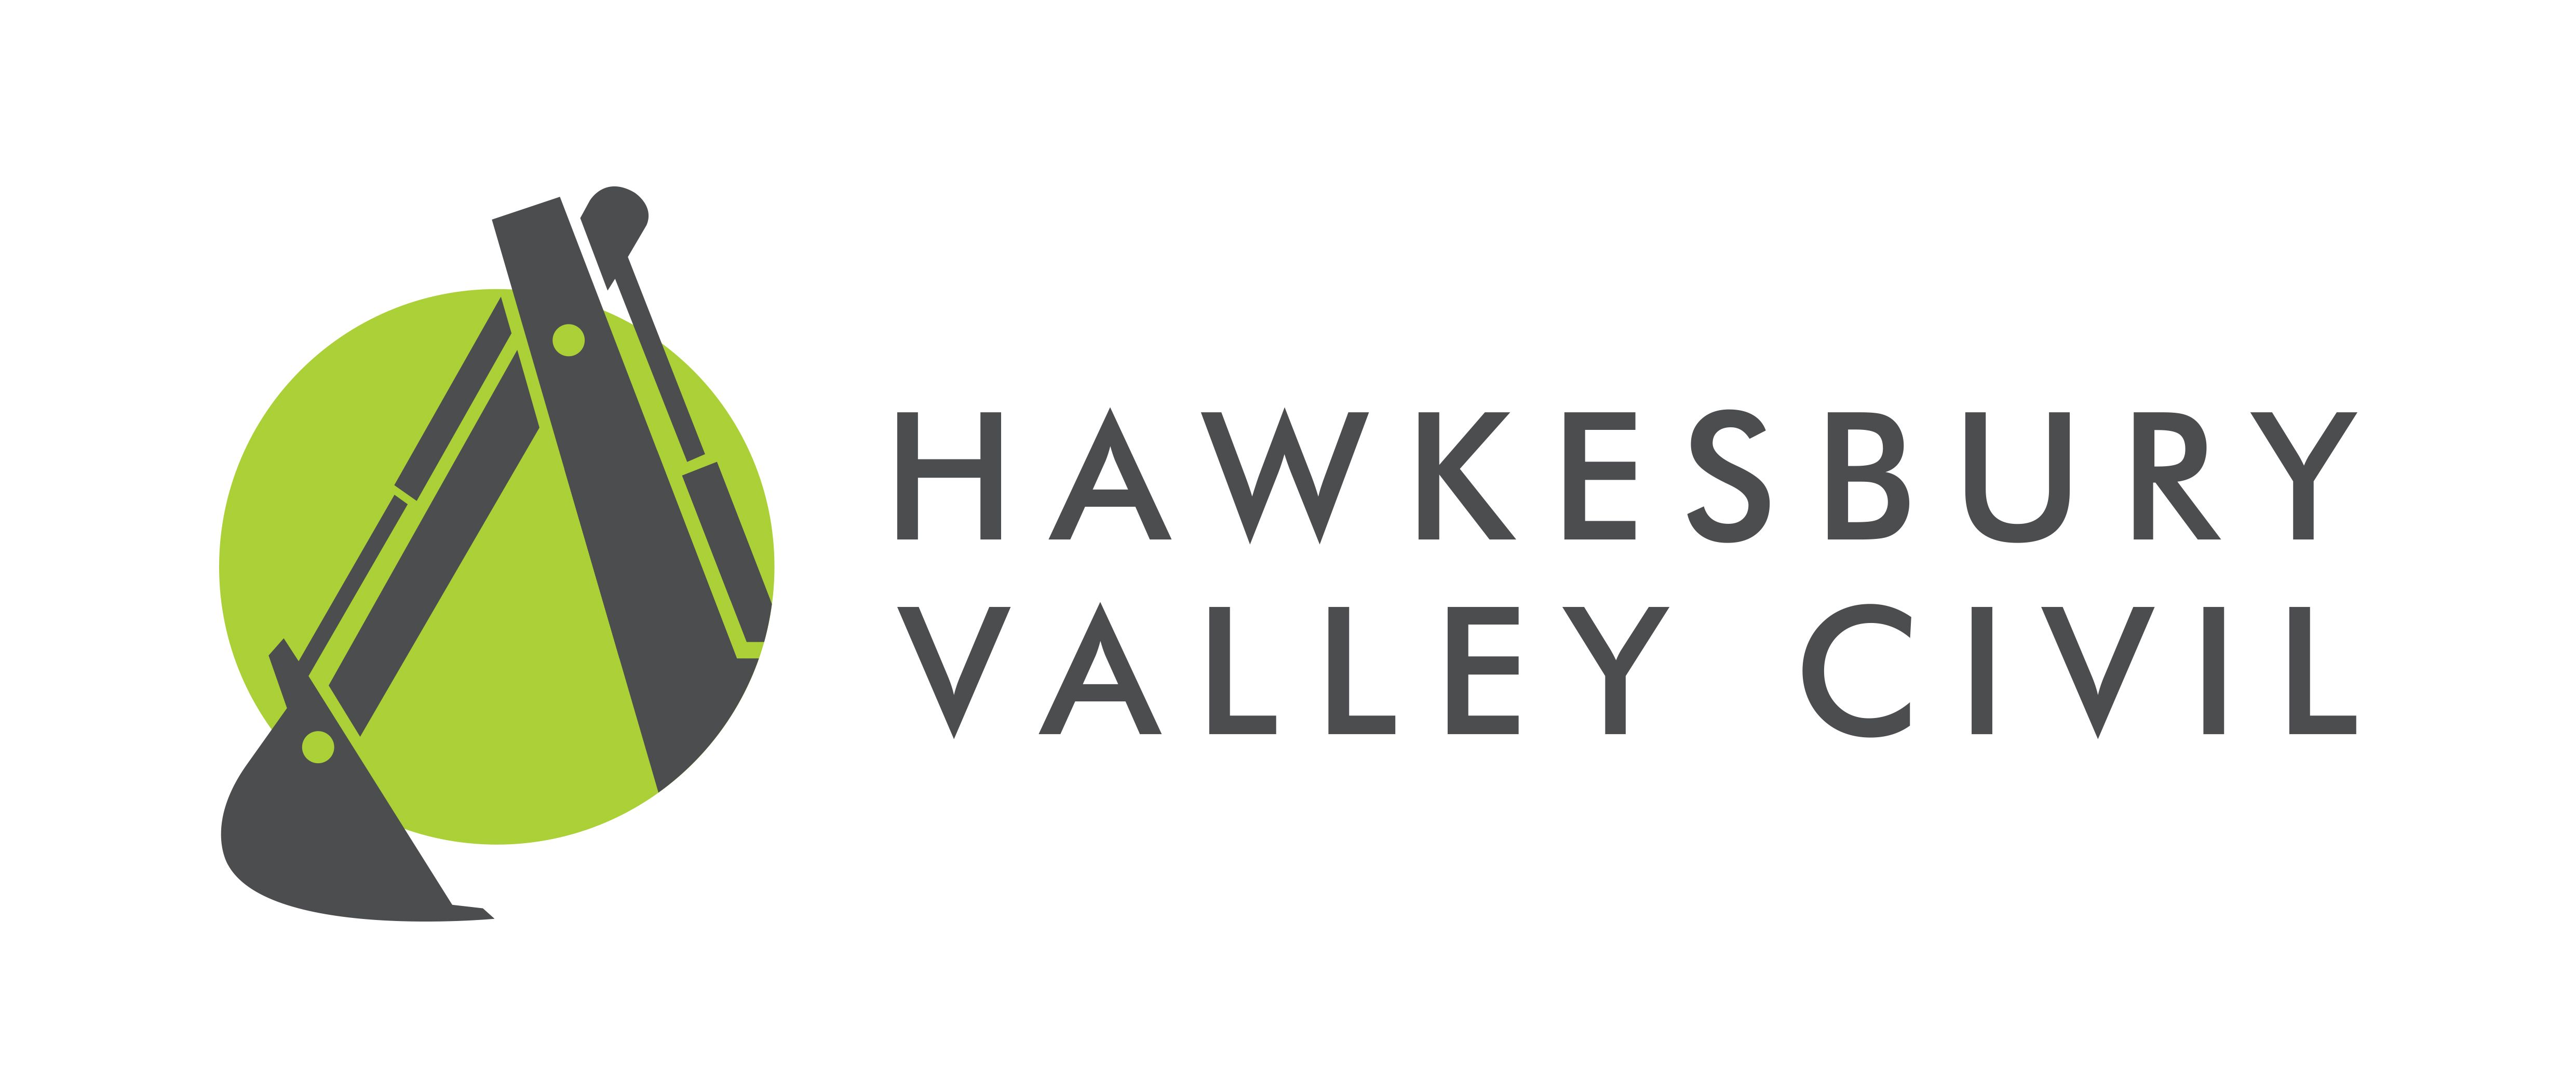 Hawkesbury Valley Civil